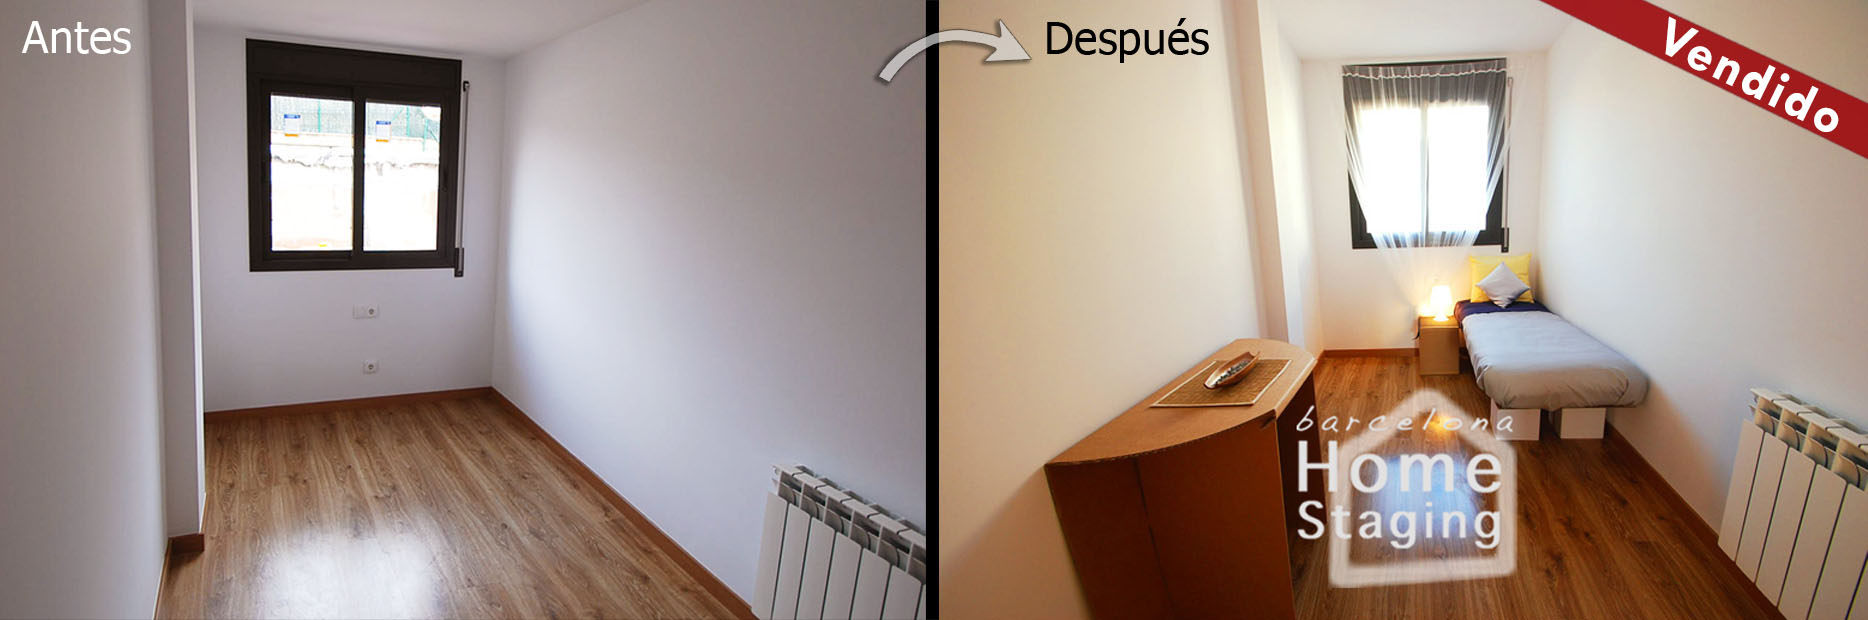 home-staging-barcelona-piso-piloto-muestra-mobles-cartró